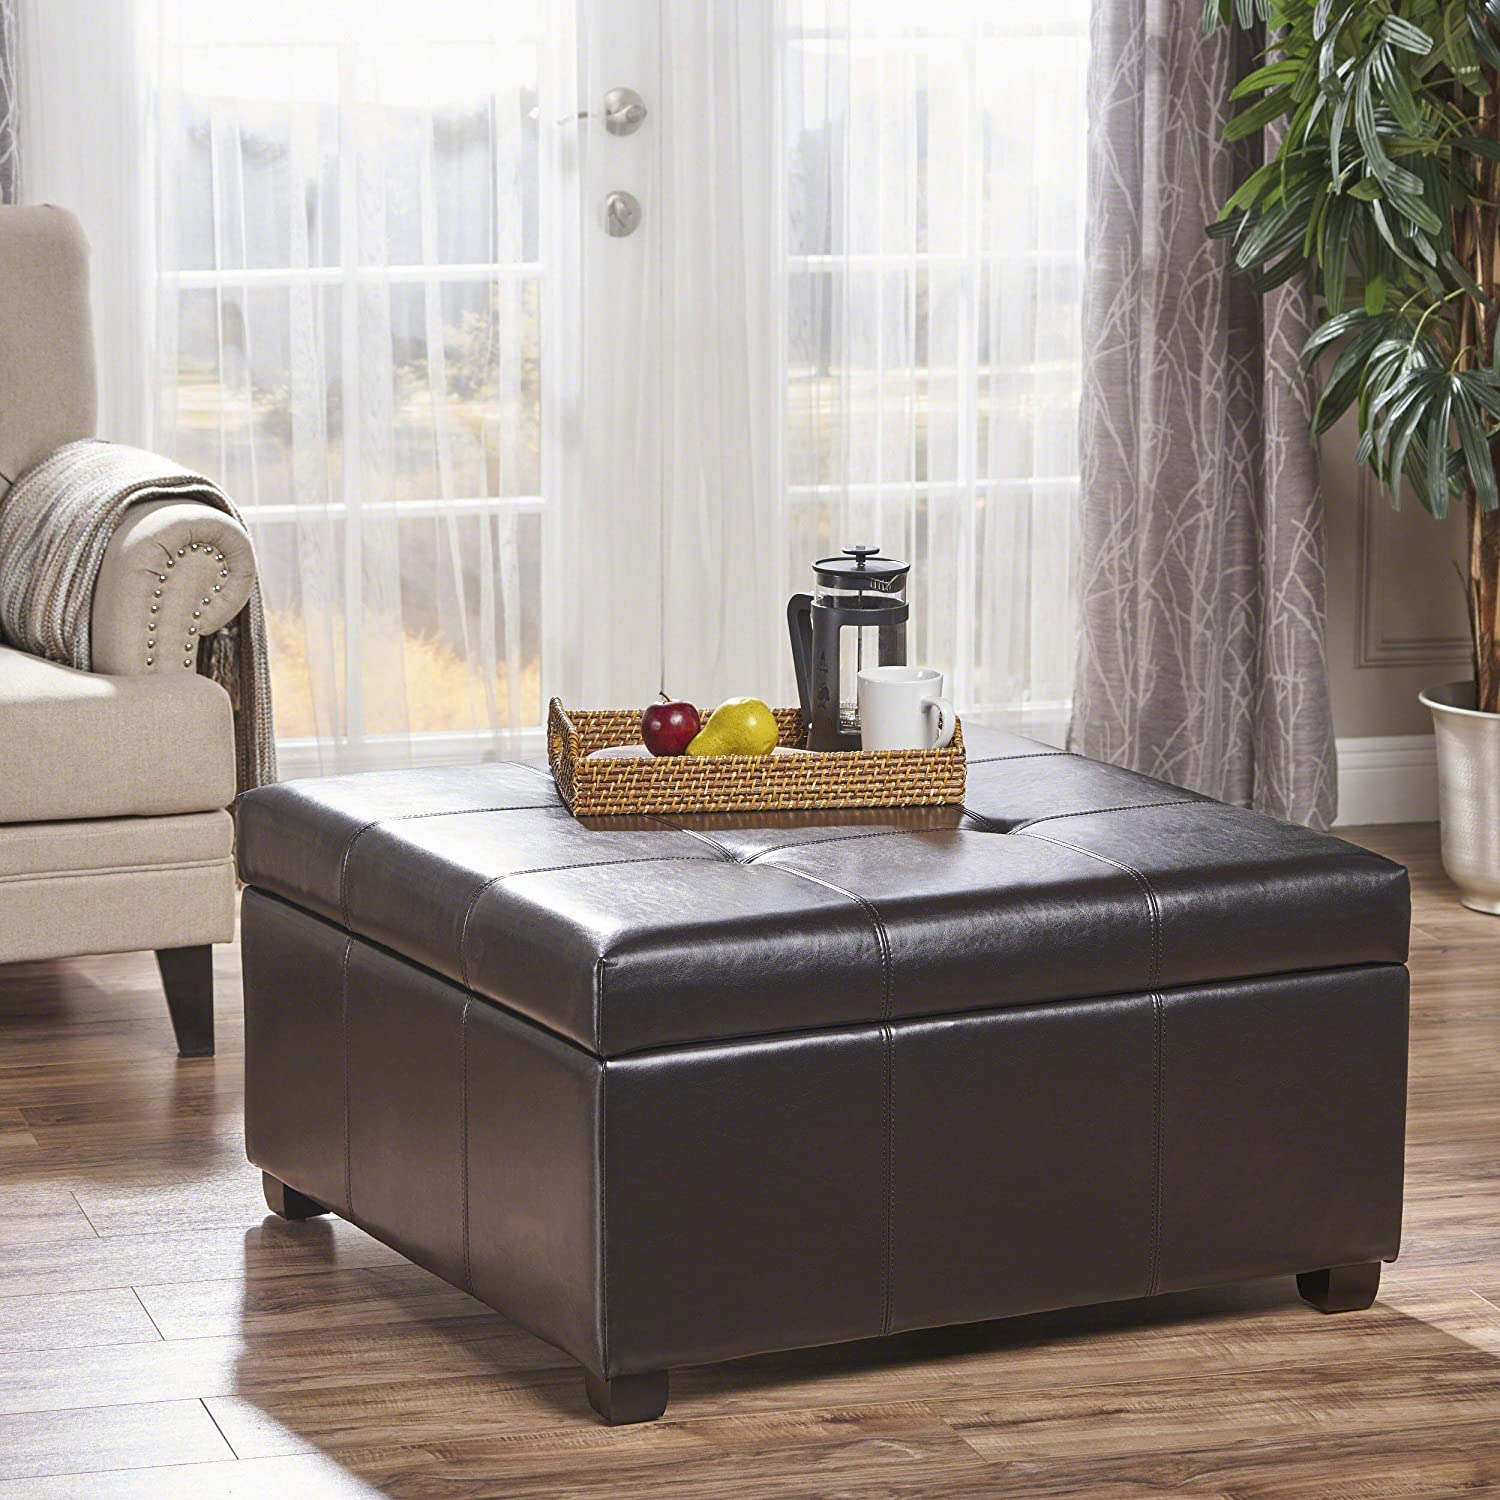 Christopher Knight Home 233829 Patsy Espresso Tufted Leather Storage Ottoman